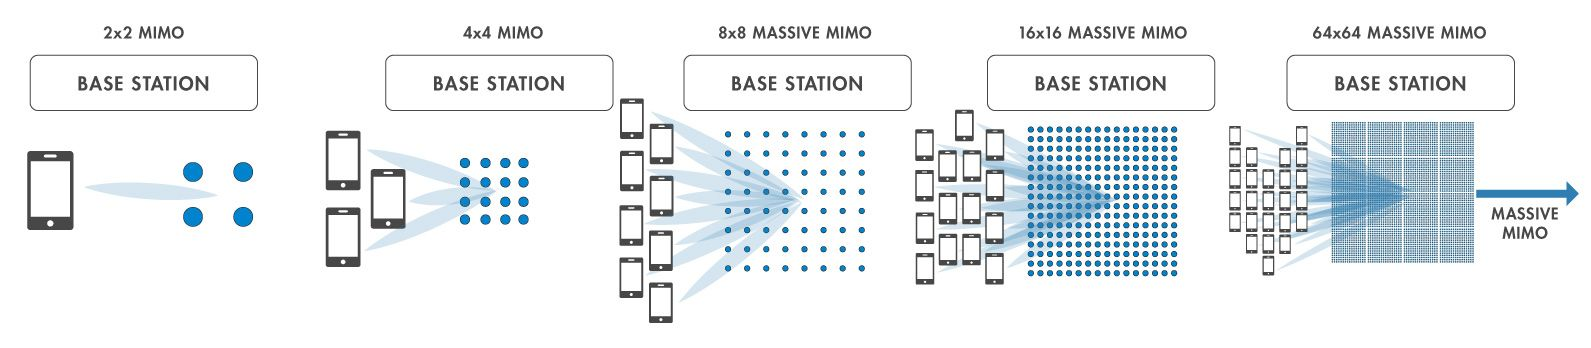 Types of MIMO systems.